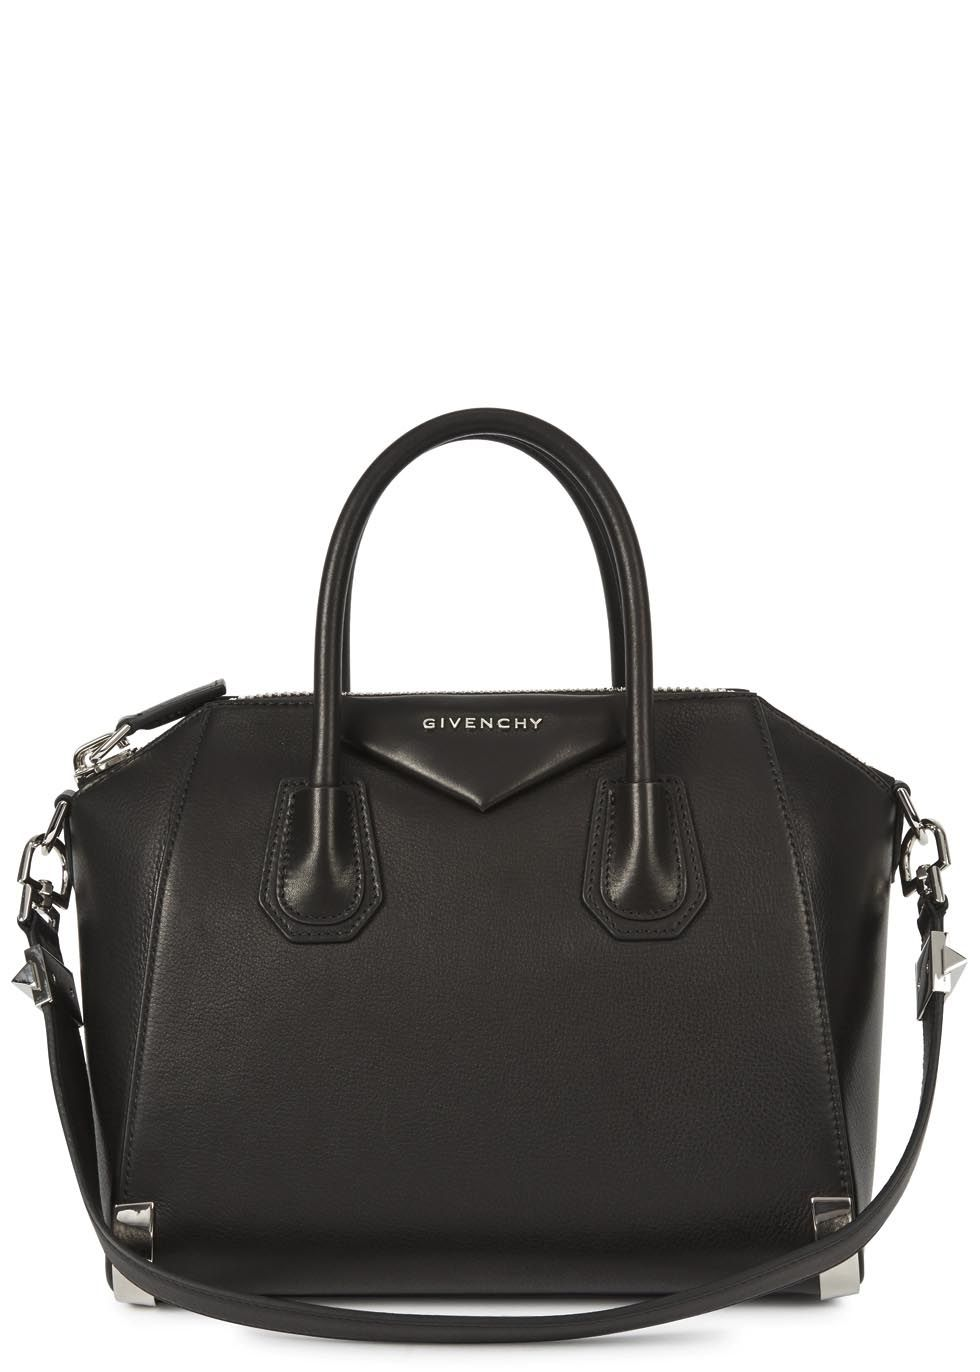 fdc76a599f48 Givenchy black grained leather tote Two top handles